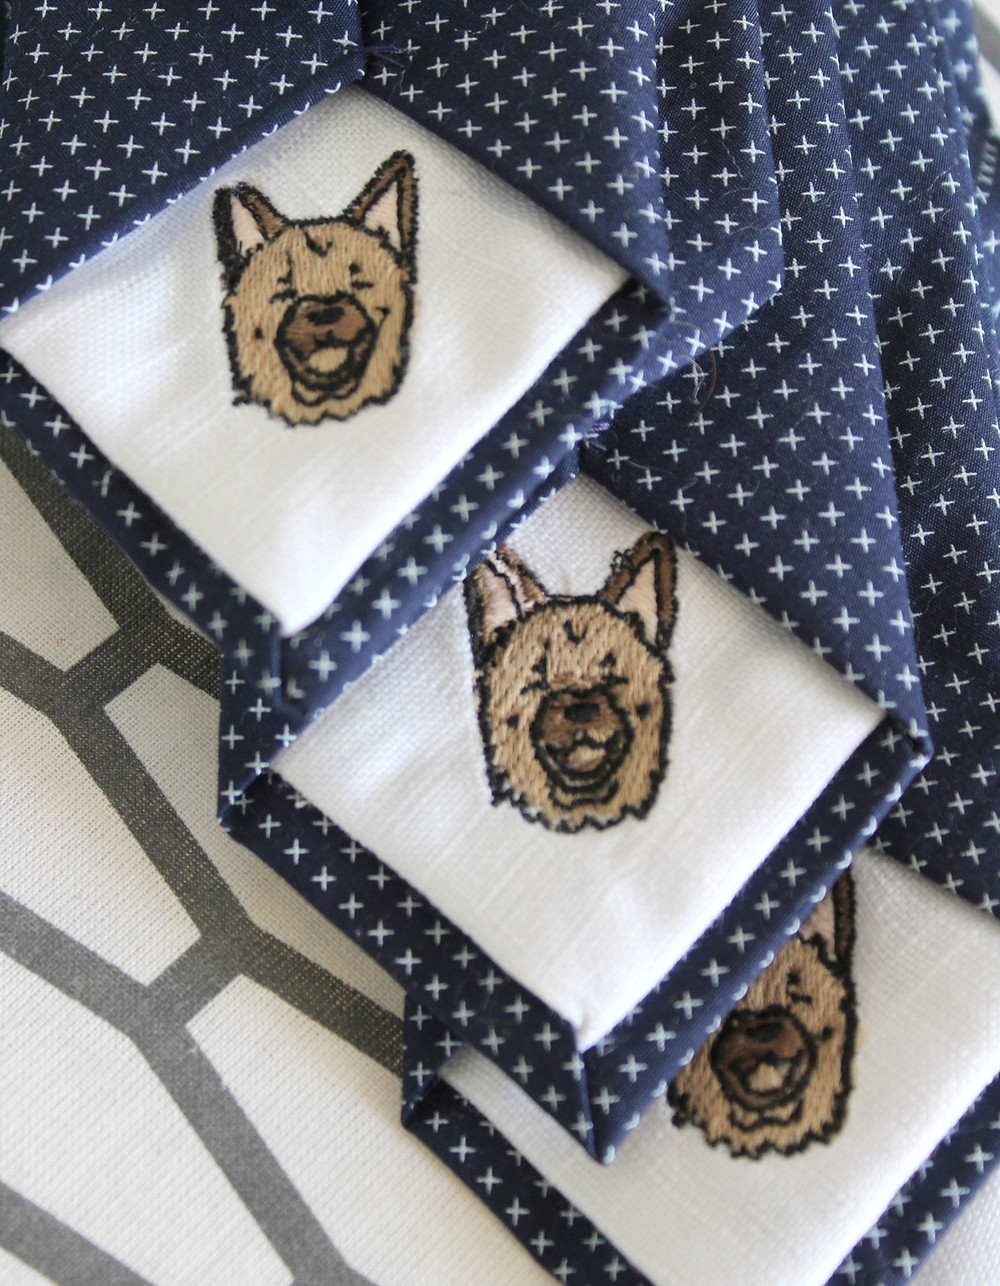 Turn your dogs face into art-Handsome&lace Custom Neckties and Bow ties